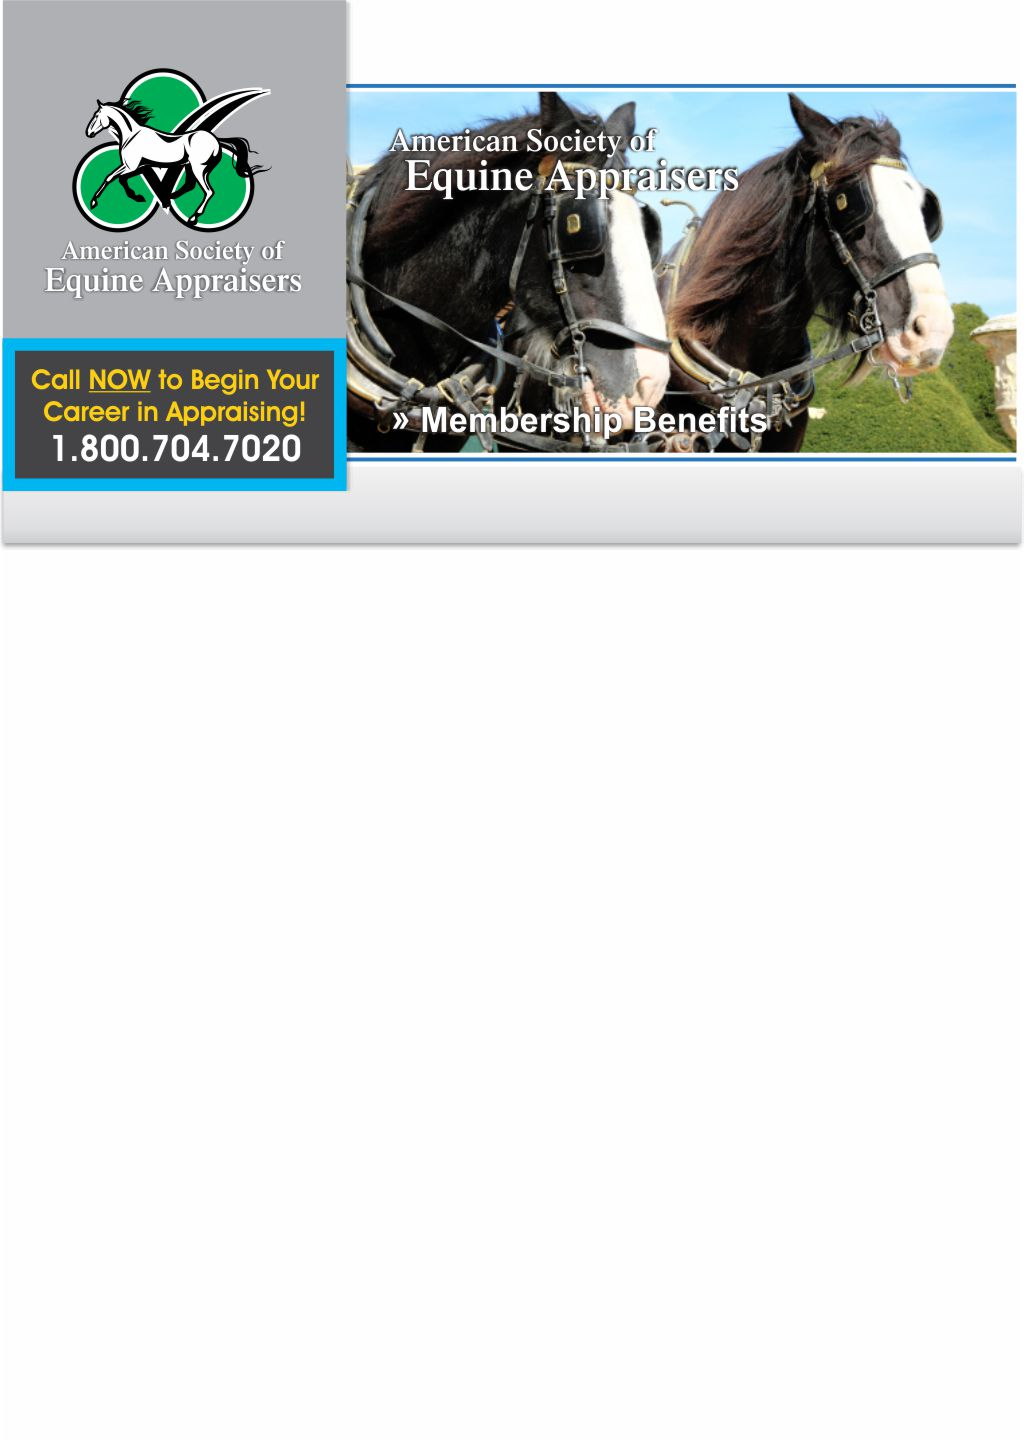 picture How to Become an Equine Appraiser